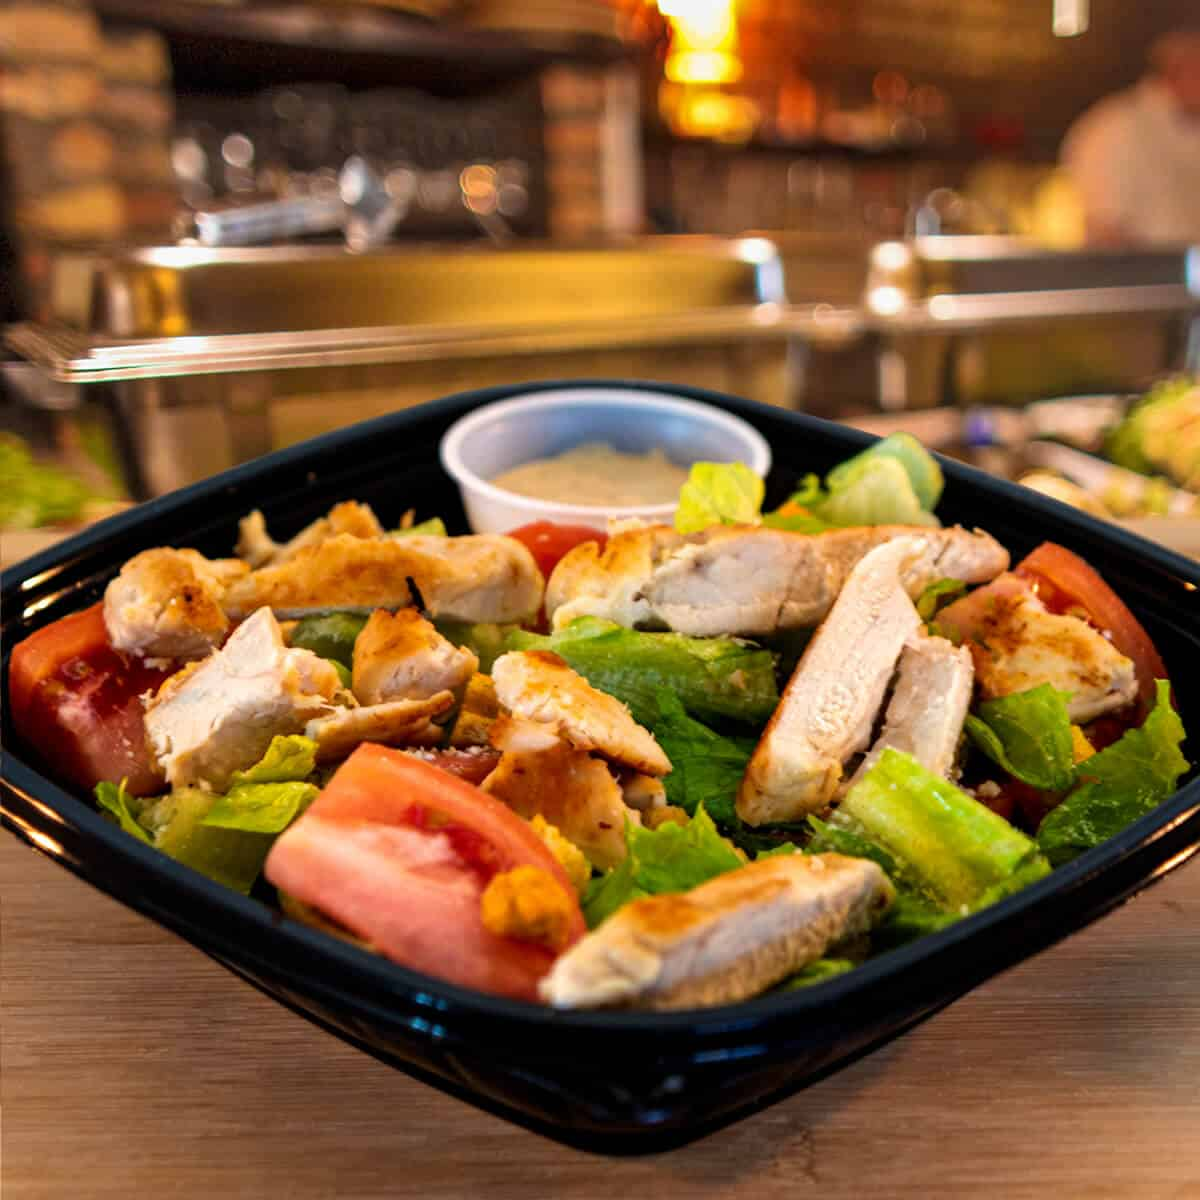 Chicken, lettuce, tomatoes and a creamy Caesar dressing